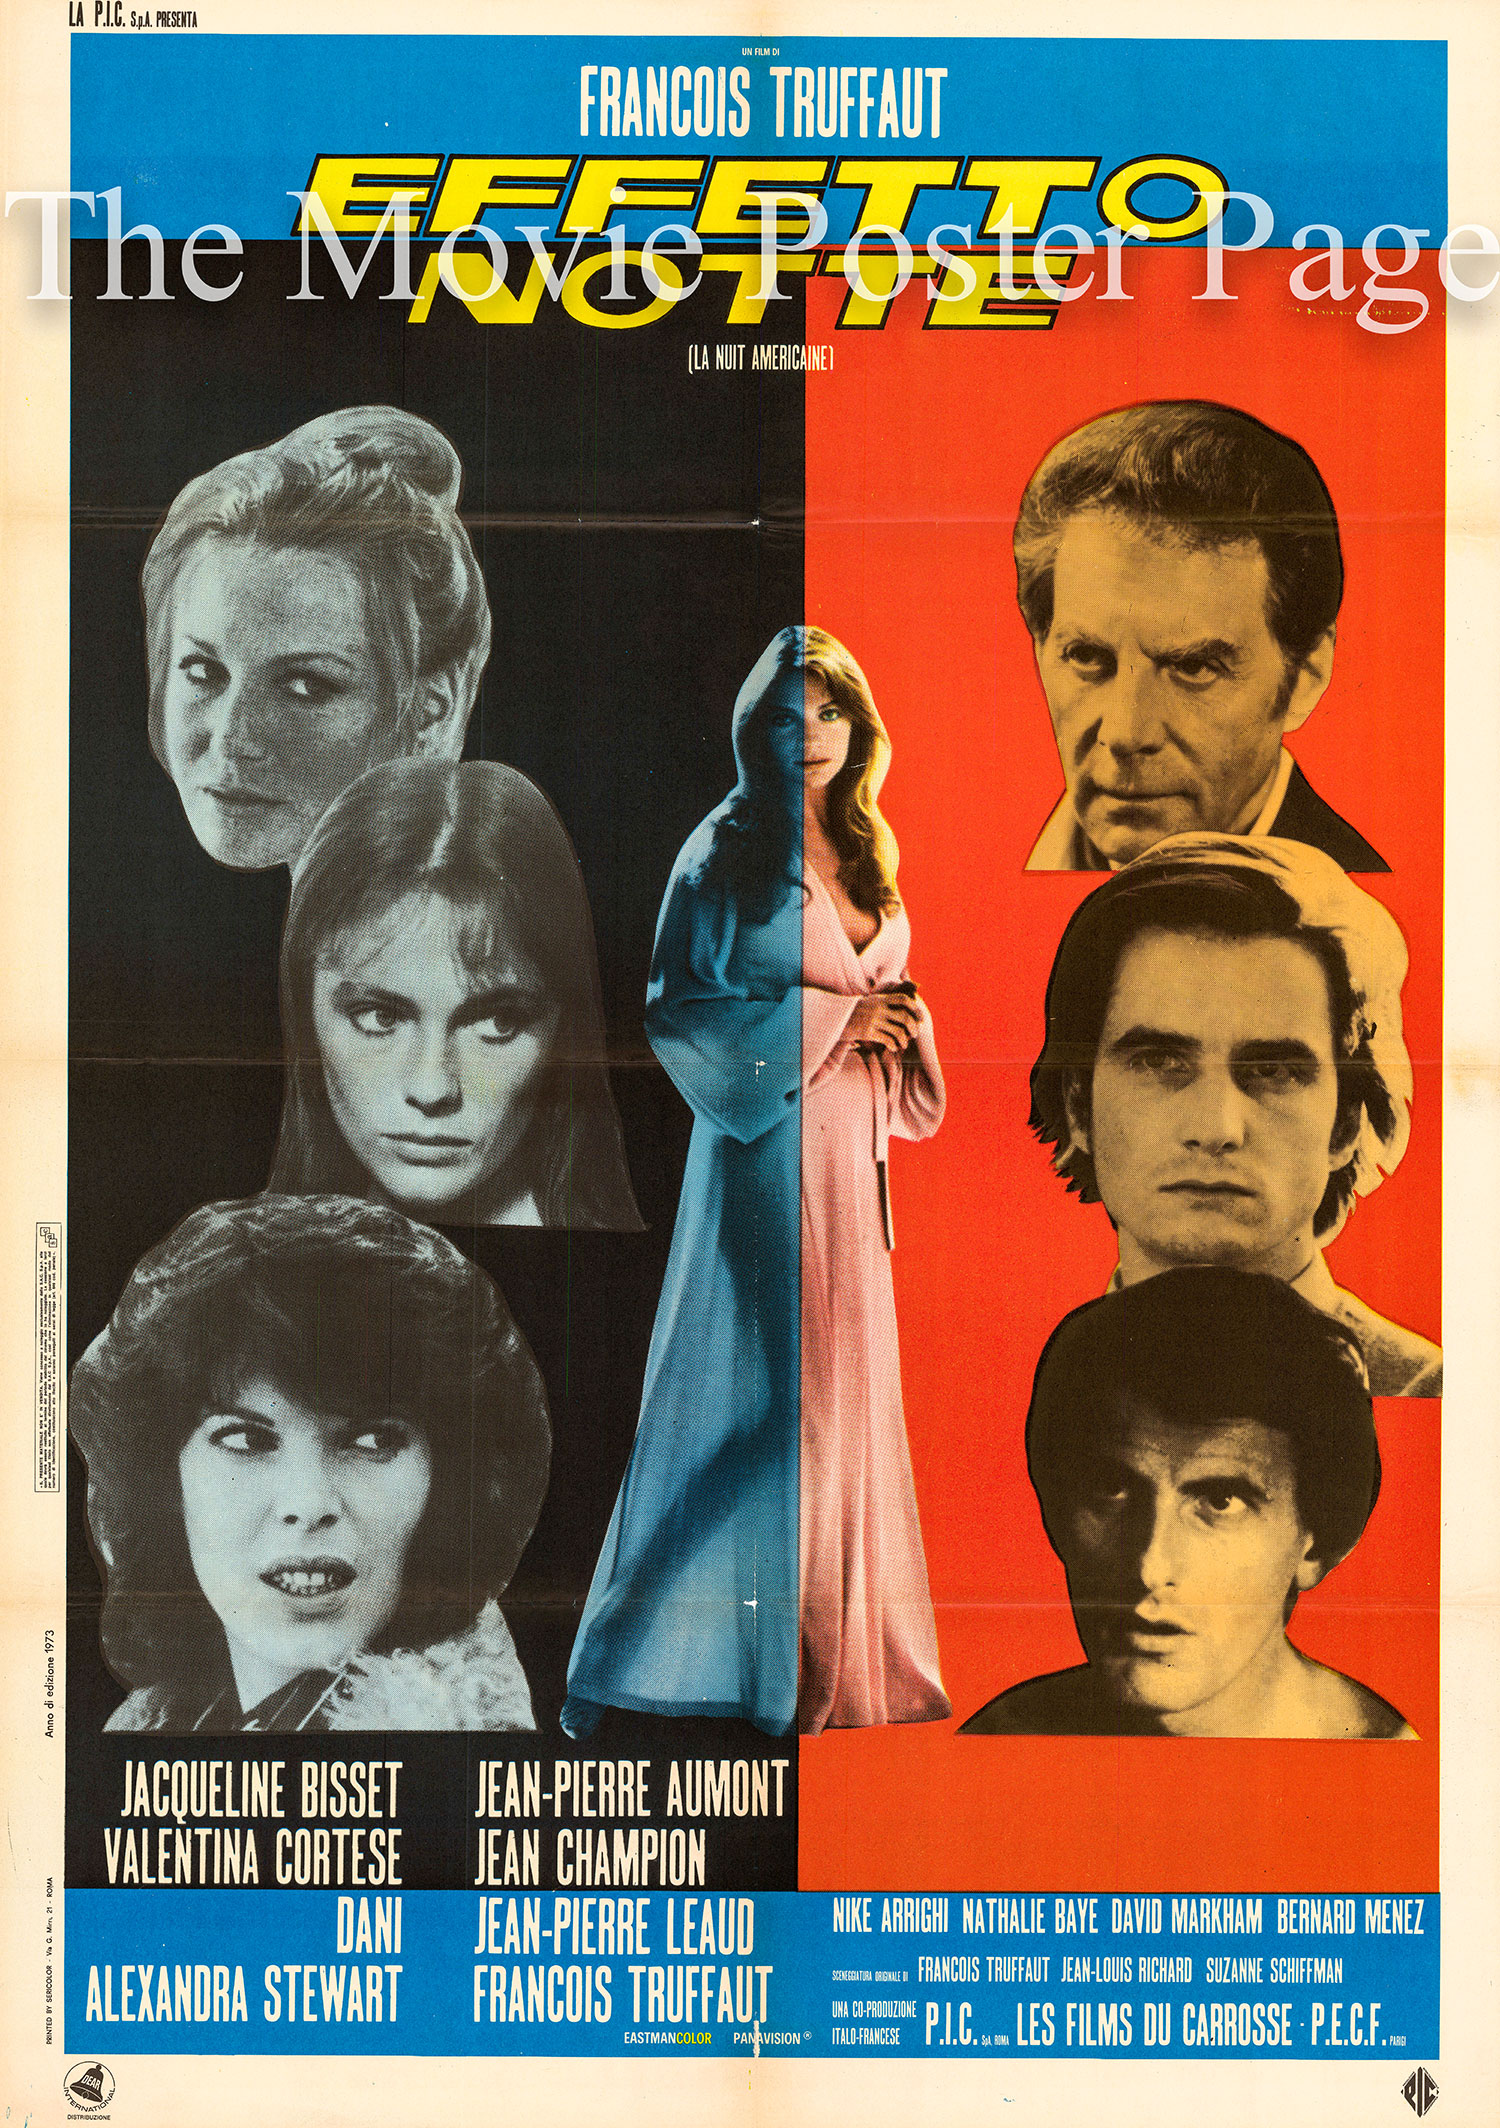 Pictured is an Italian two-sheet promotional poster for the 1973 Francoise Truffaut film Day for Night starring Jacqueline Bisset.